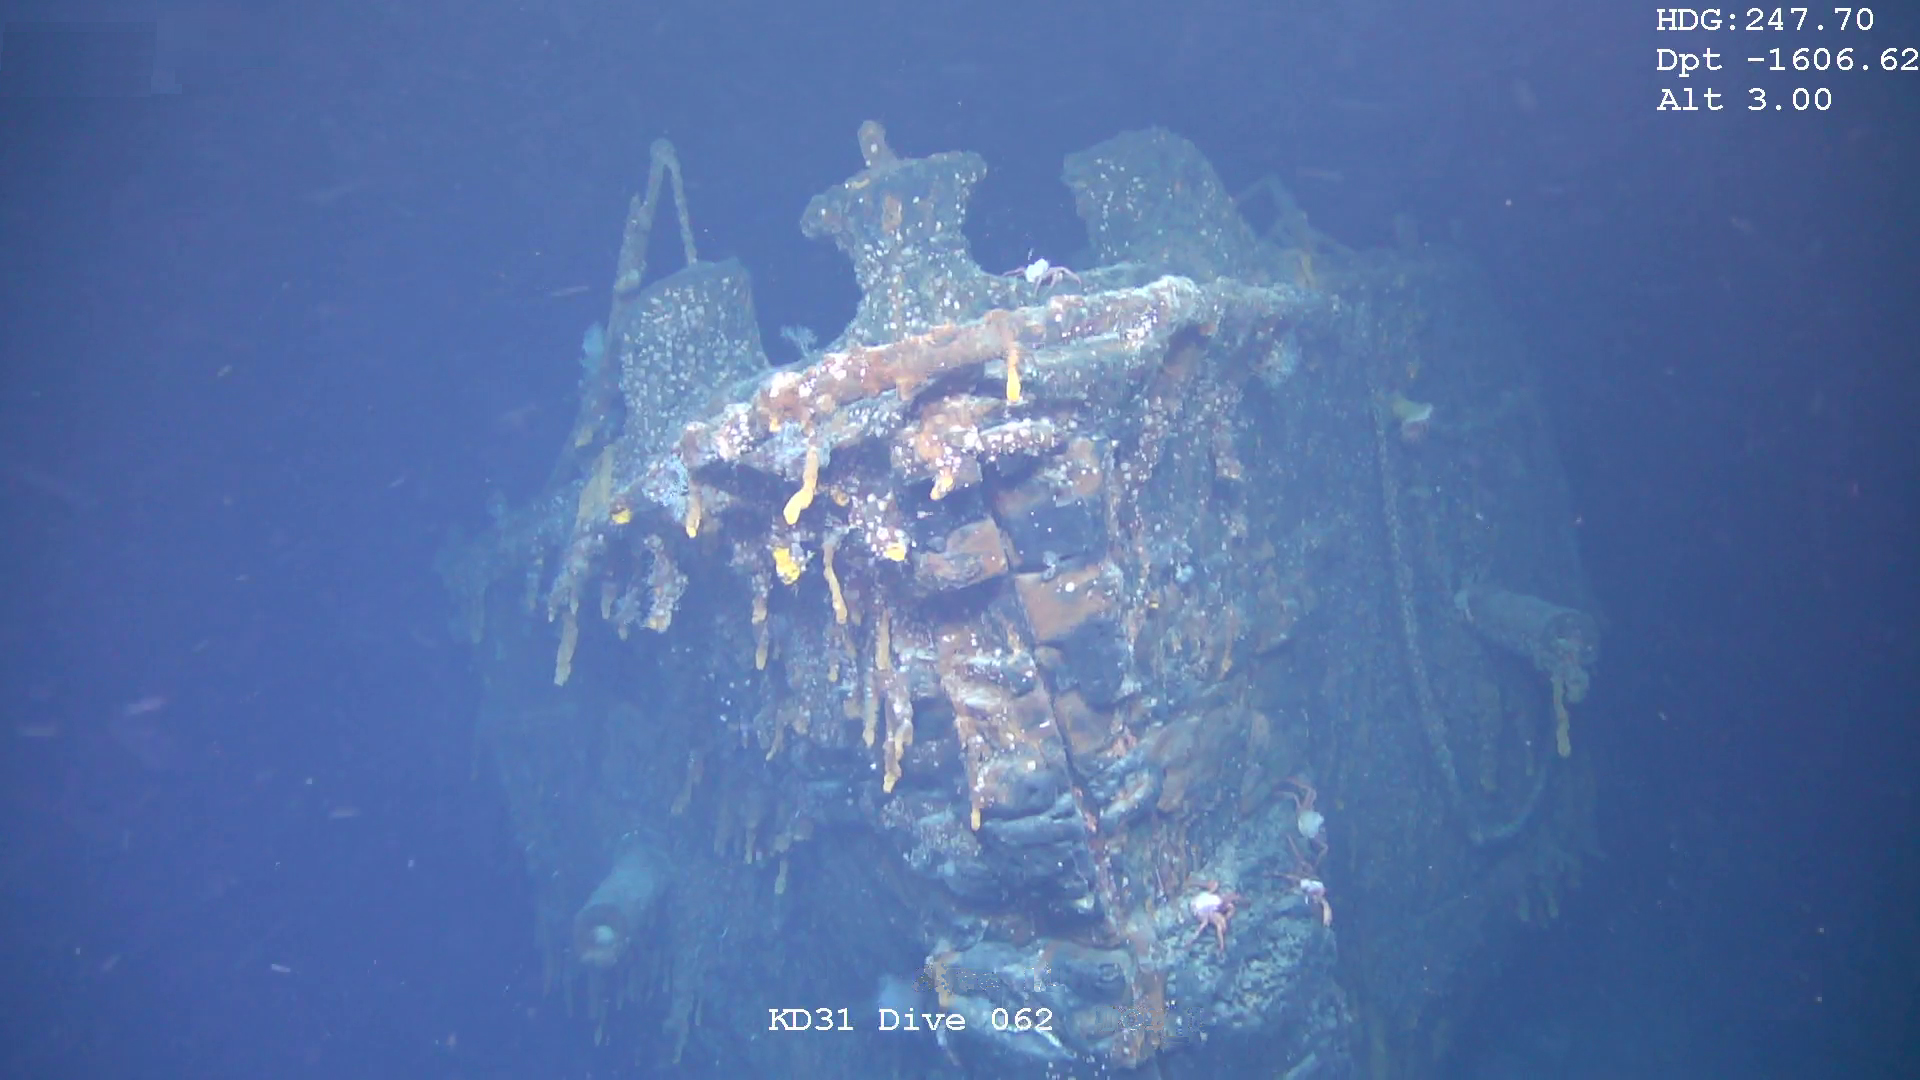 World War I battlecruiser wreck discovered near the Falkland Islands